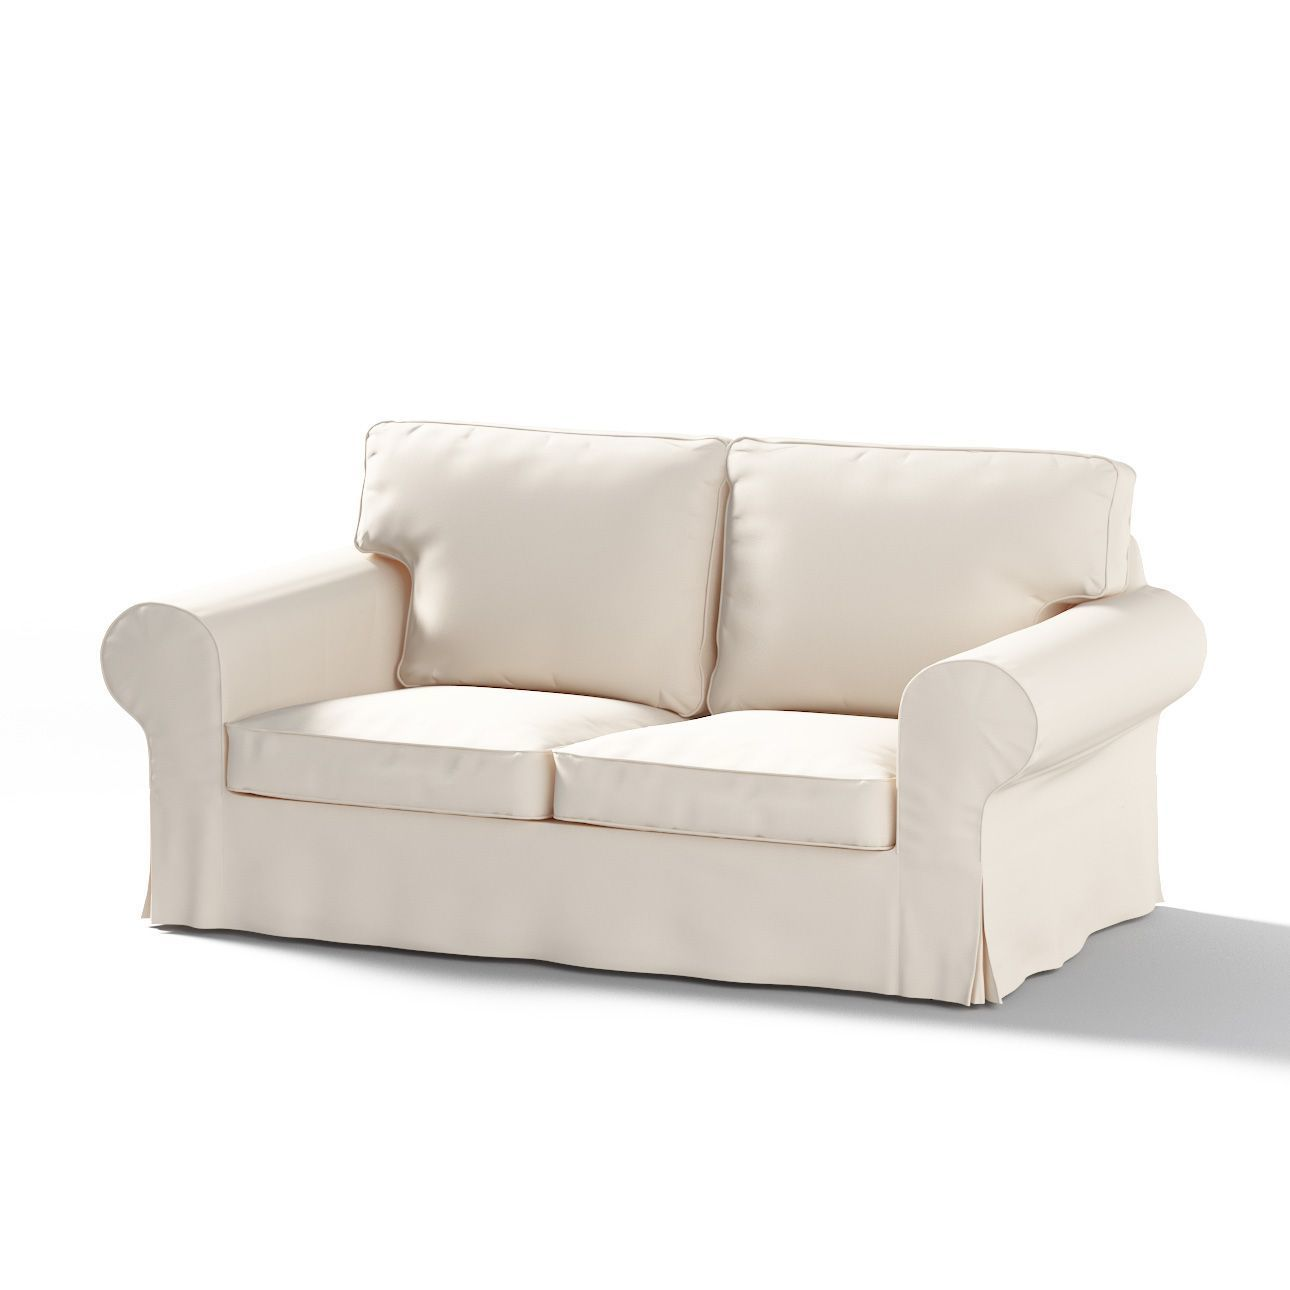 finest sofa slipcovers walmart plan-Top sofa Slipcovers Walmart Wallpaper